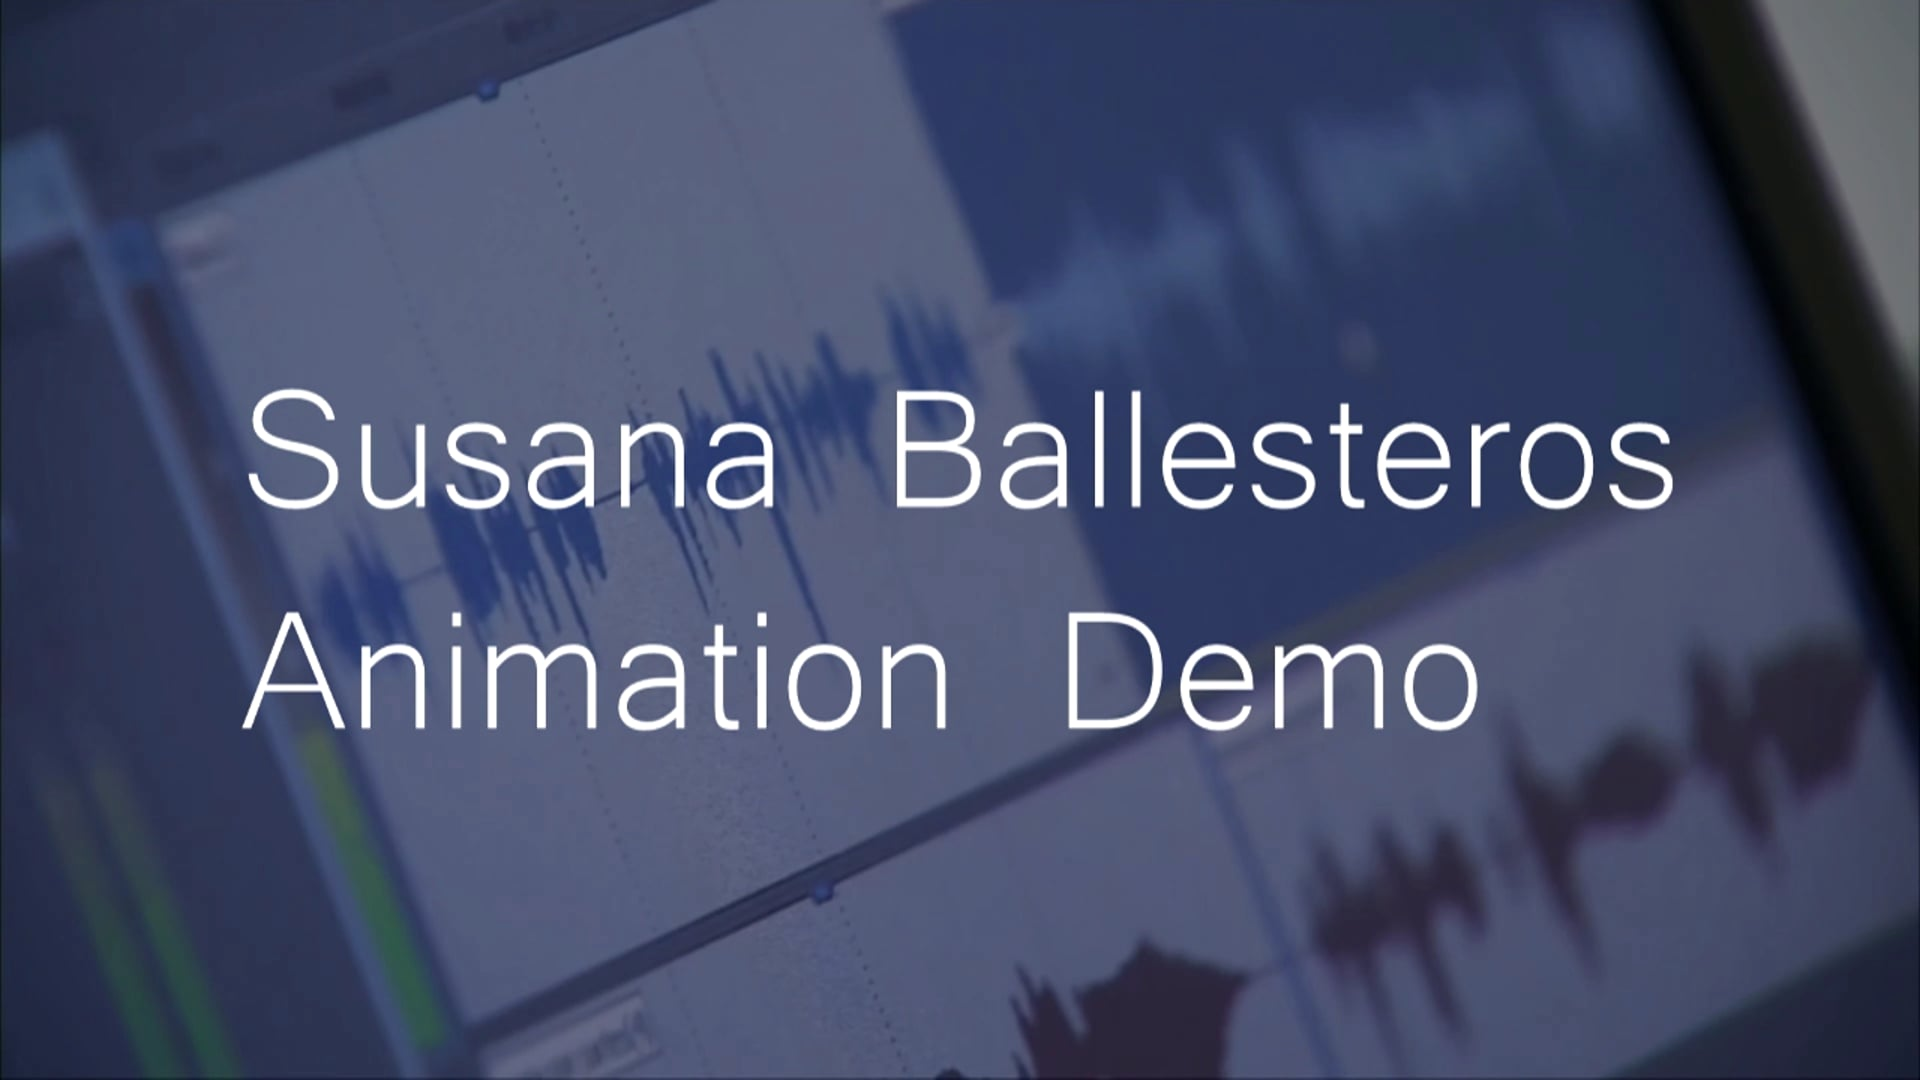 Susana Ballesteros Animation Demo. Voice Talent Represented by AVO Talent Agency